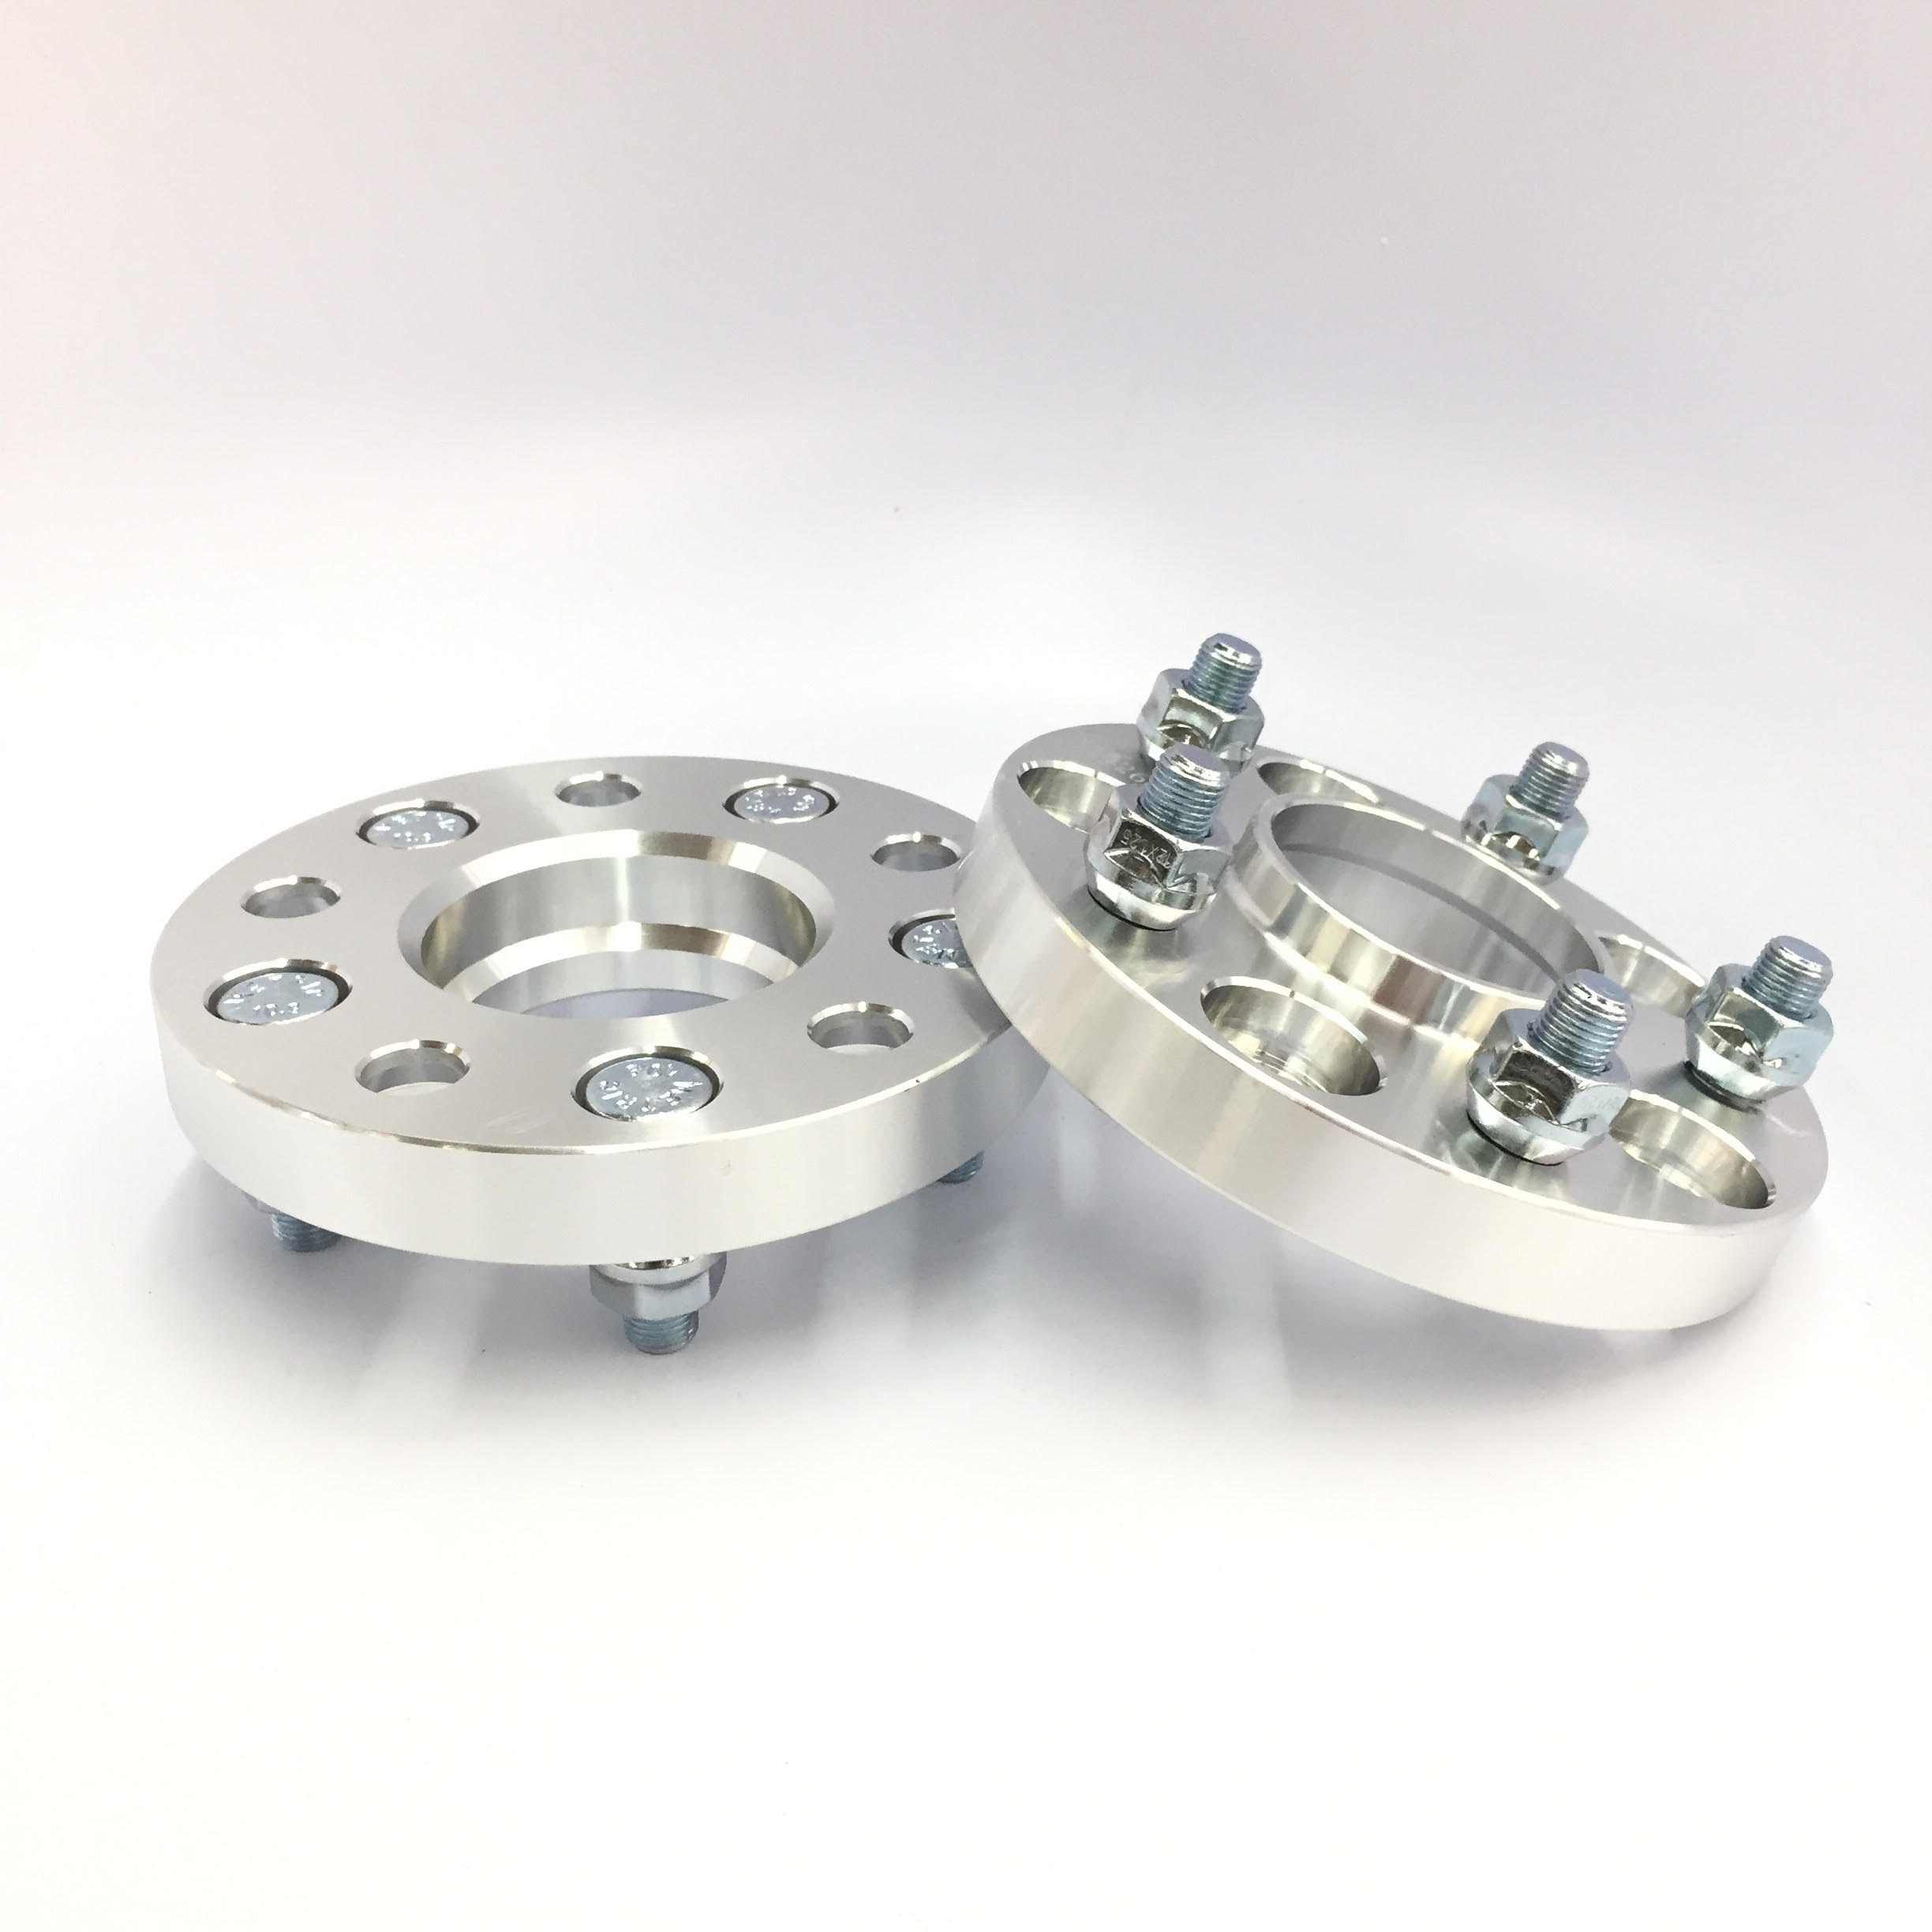 2pc 25mm ( 1 Inch ) Wheel Adapters | 5x108 to 5x114.3 5x4.5 Hubcentric Spacers